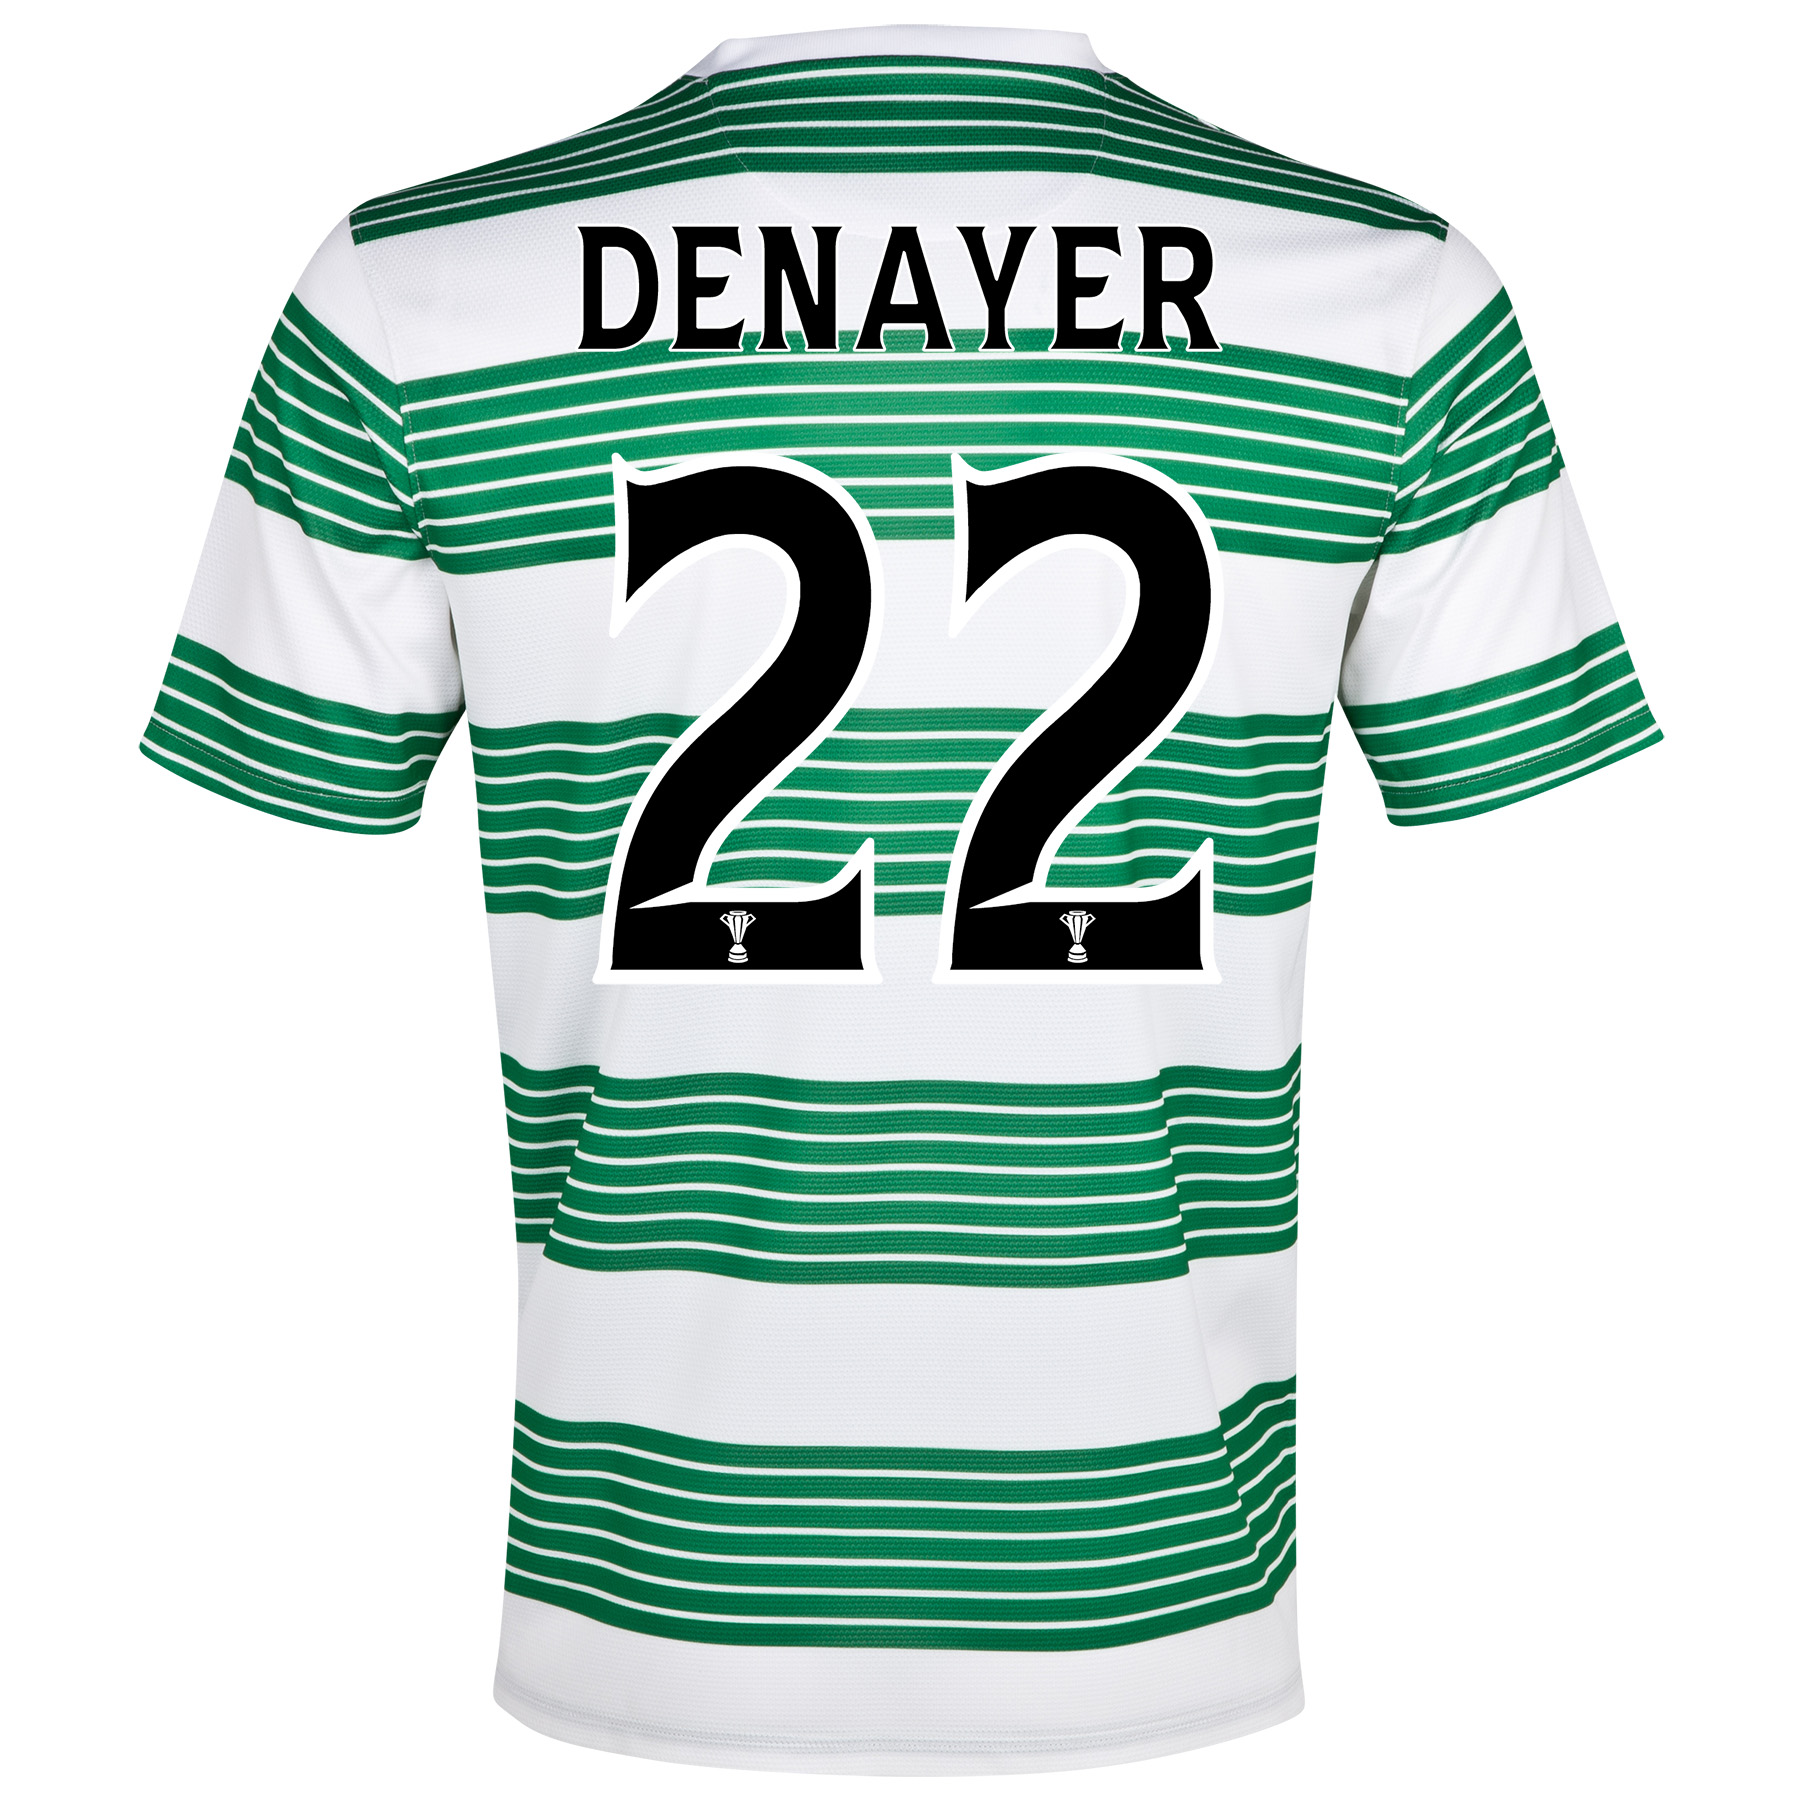 Celtic Home Shirt 2013/15 - With Sponsor with Denayer 22 printing